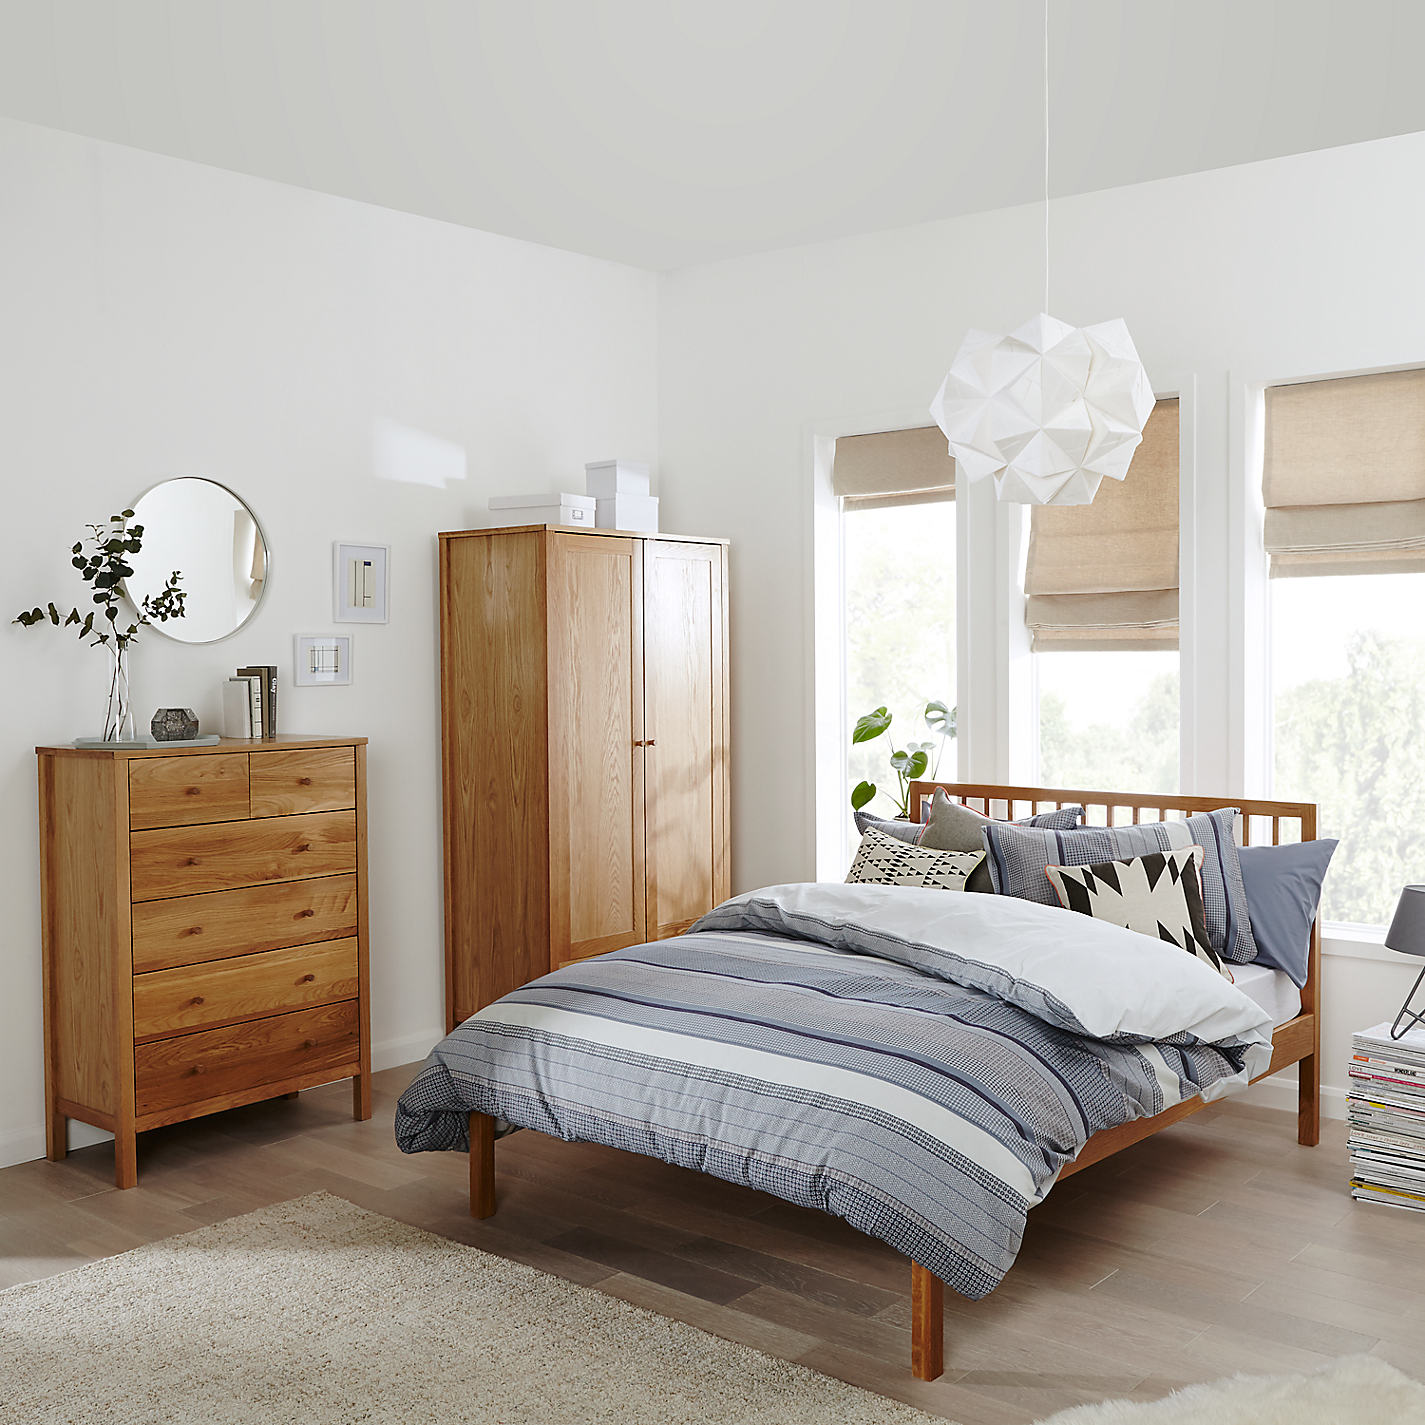 Bedroom Ideas John Lewis interesting bedroom ideas john lewis eames white rocking chair